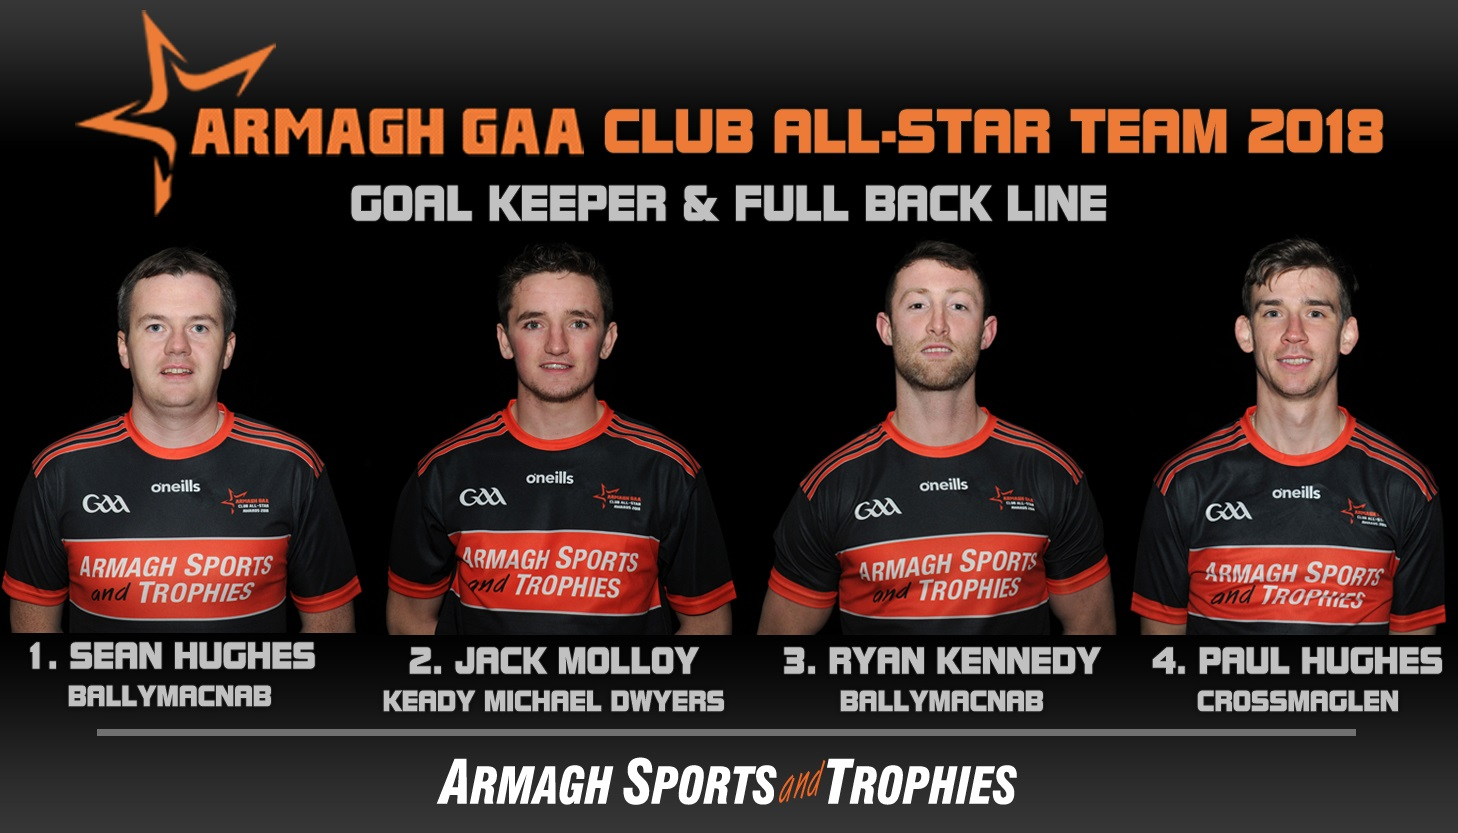 Armagh Club All Star Awards 2018…Goalkeeper & Full Back Line announced